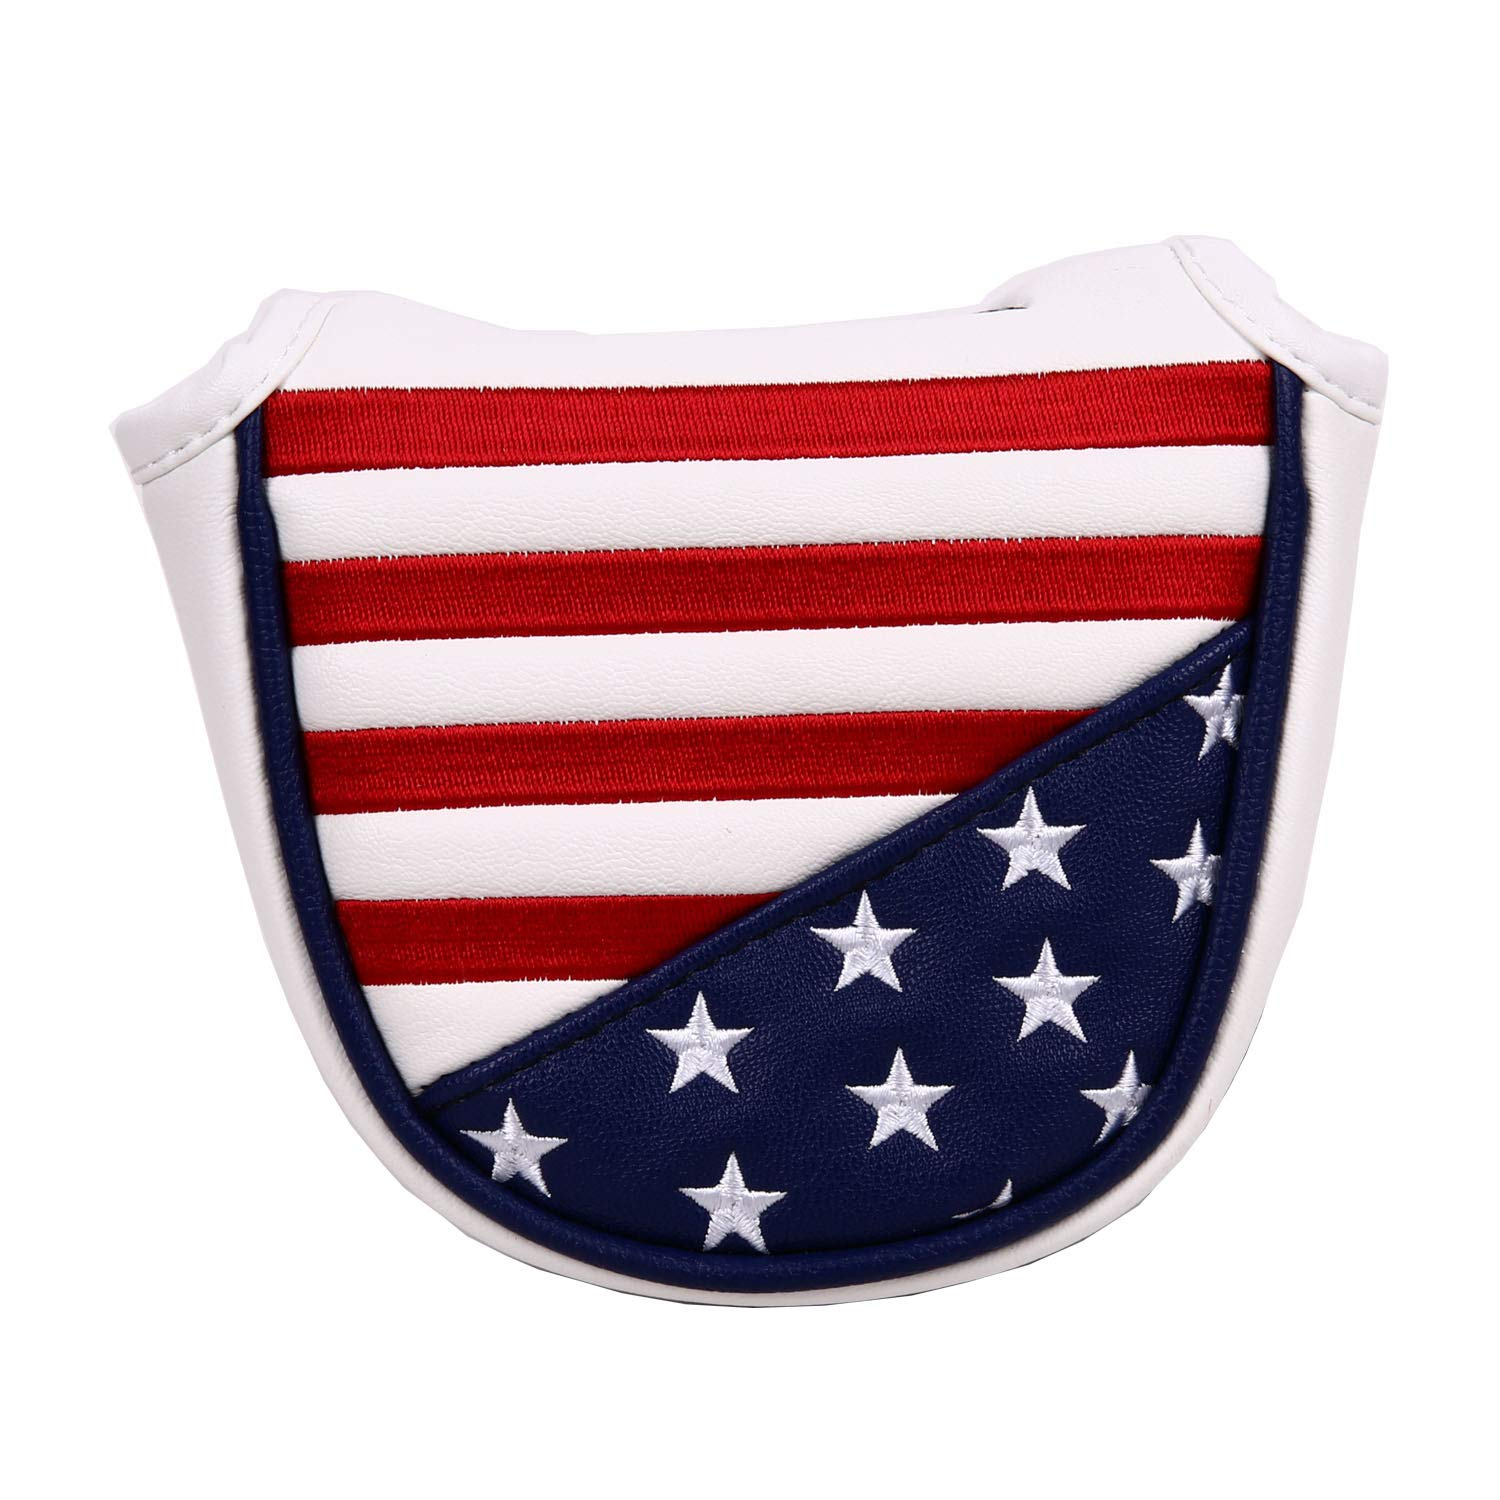 USA Stars and Stripes Magnetic Closure Golf Mallet Putter Head Cover for Odyssey Scotty Cameron Golf Builder by Sword &Shield sports